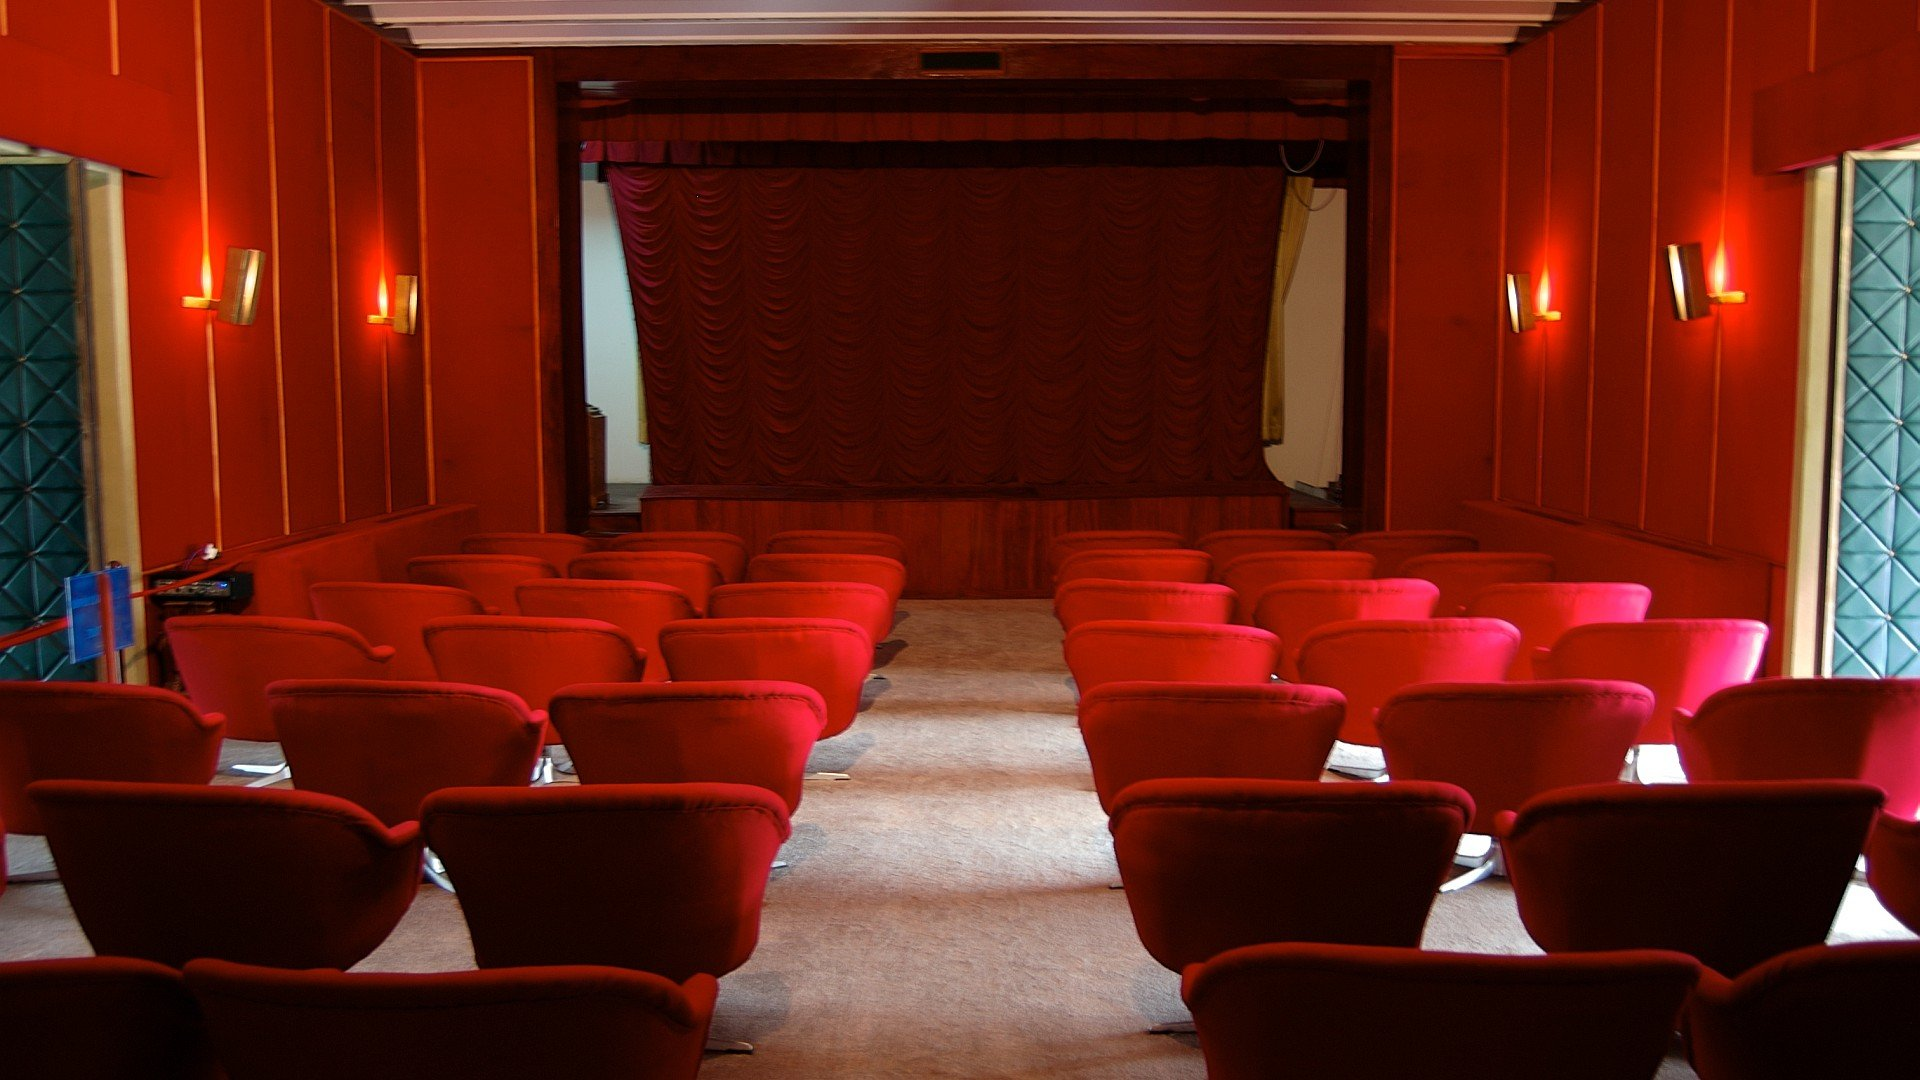 Theatre wallpaper wallpapersafari for Wallpaper home cinema